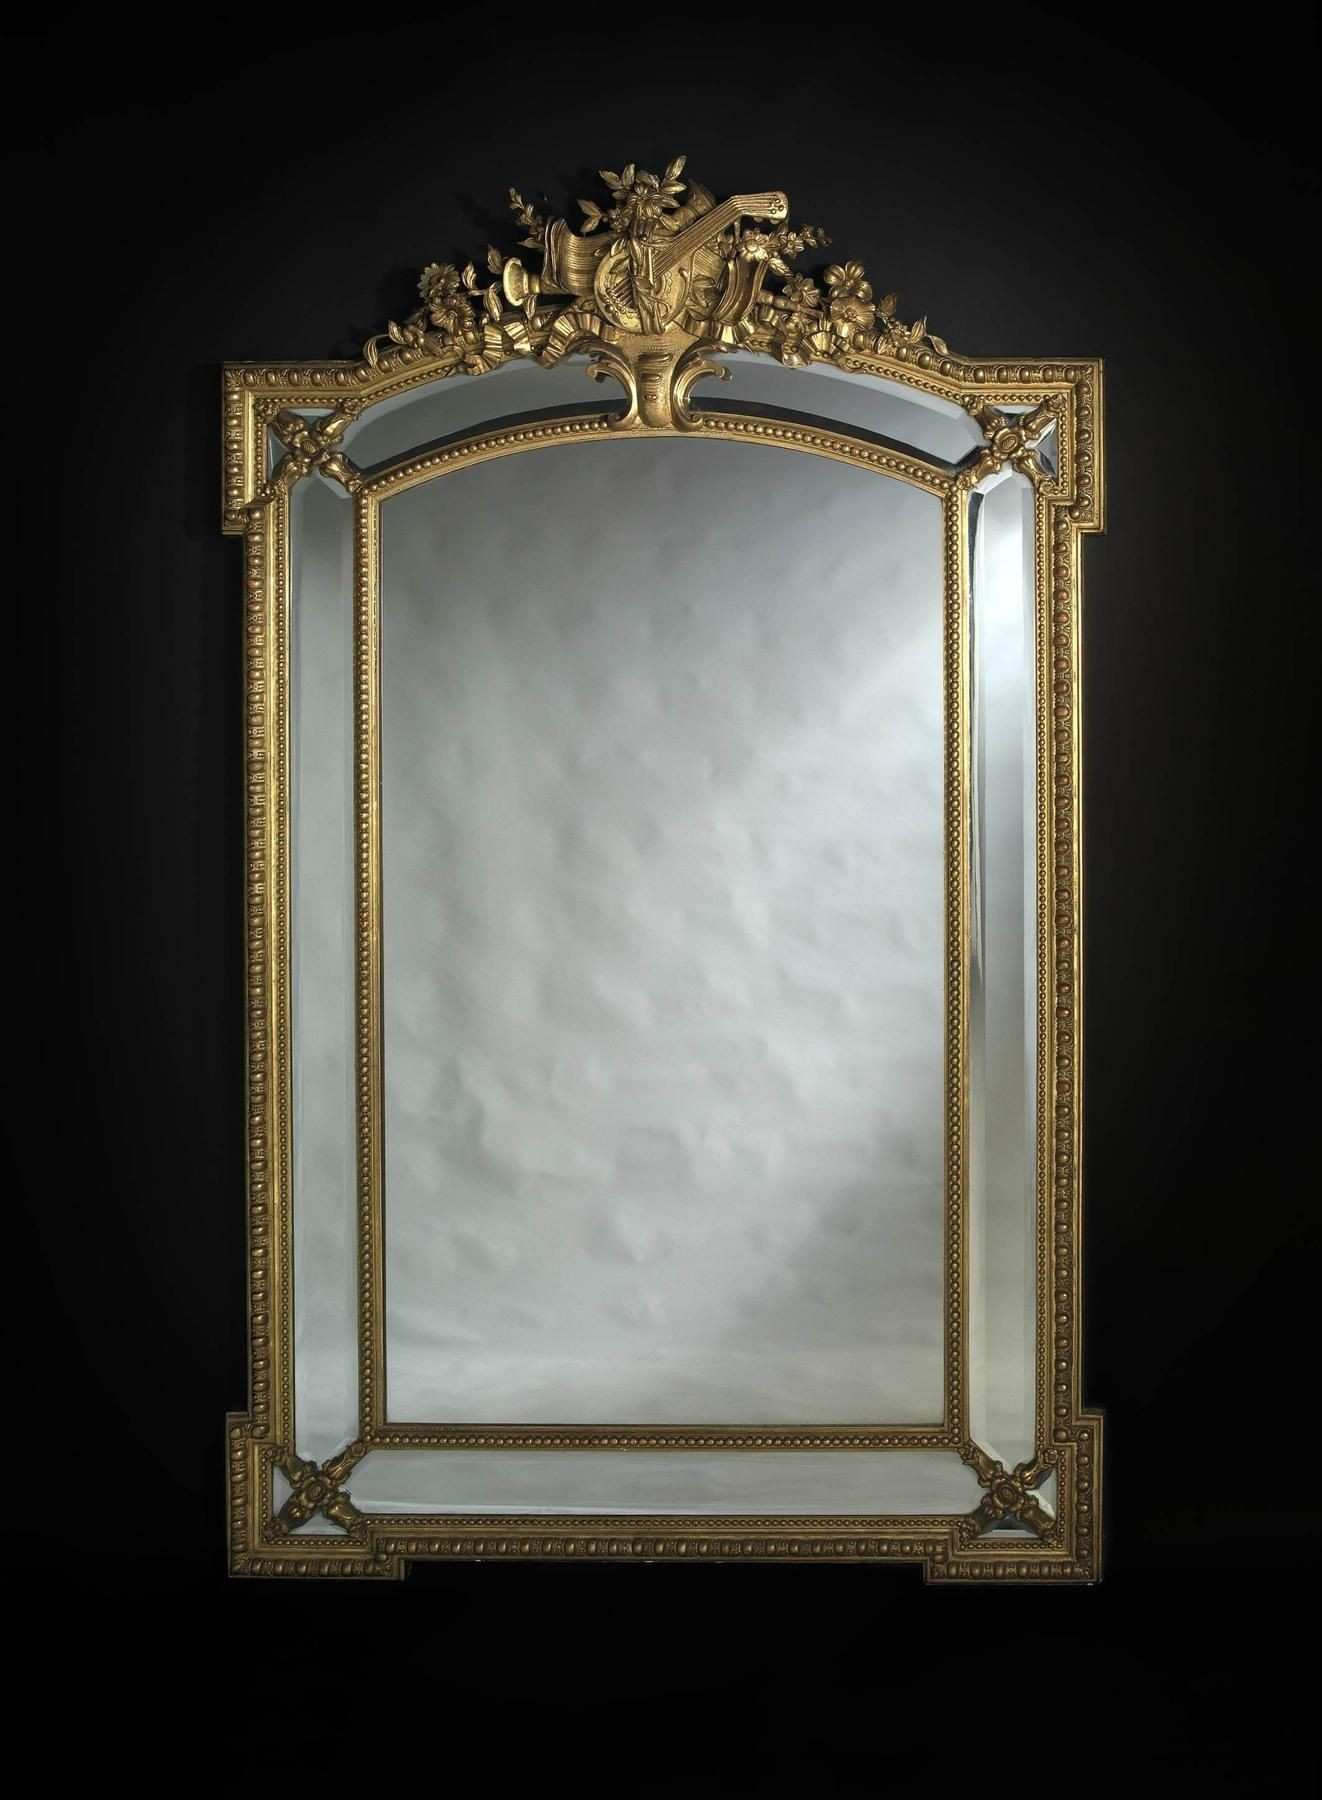 A Fine Louis XV Style Giltwood Marginal Frame Mirror with Bevelled